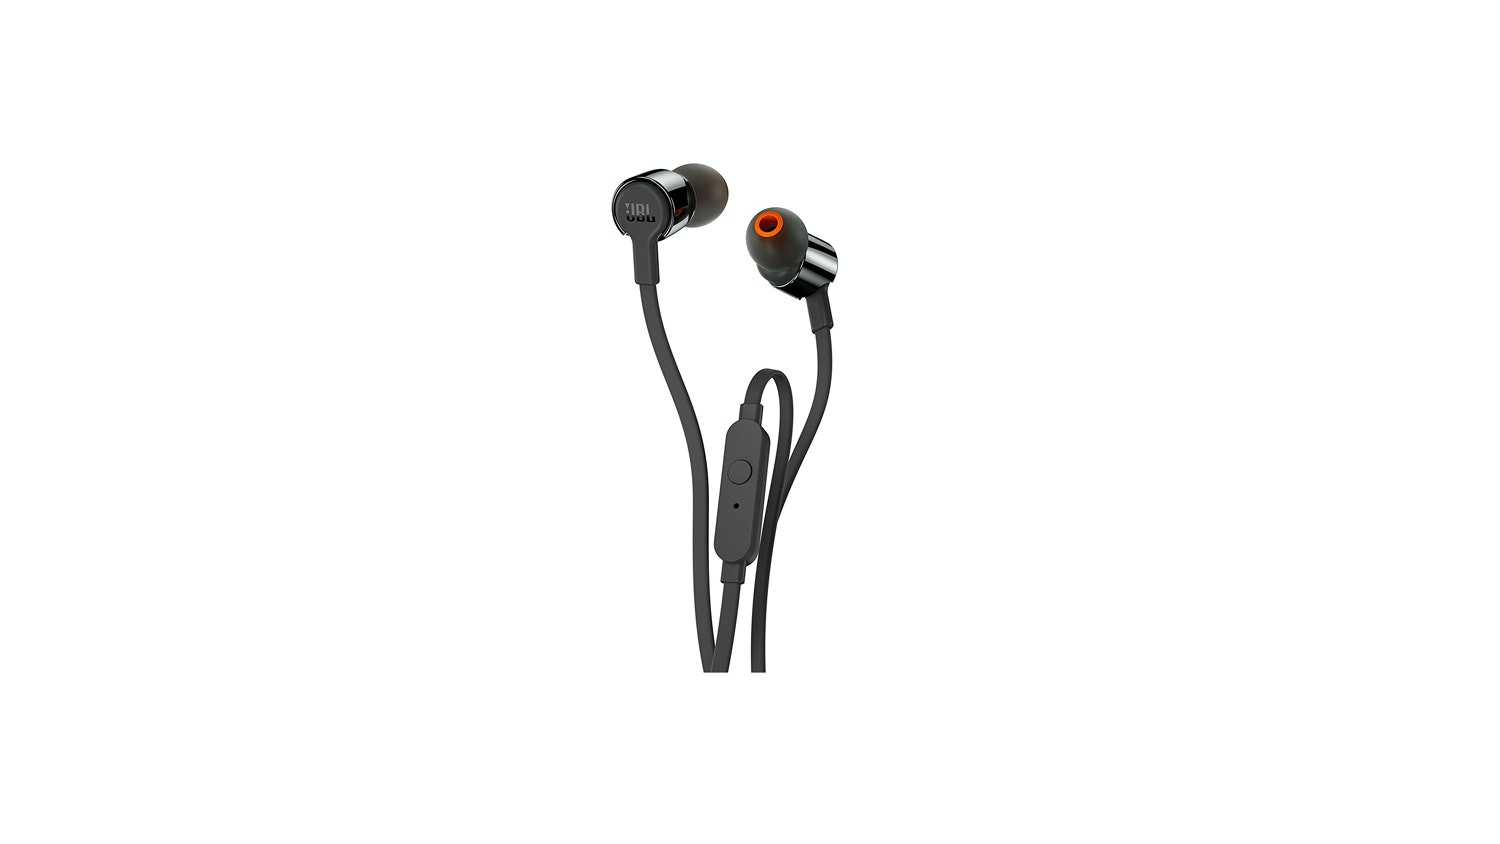 jbl t210. JBL T210 In-Ear Headphones Jbl